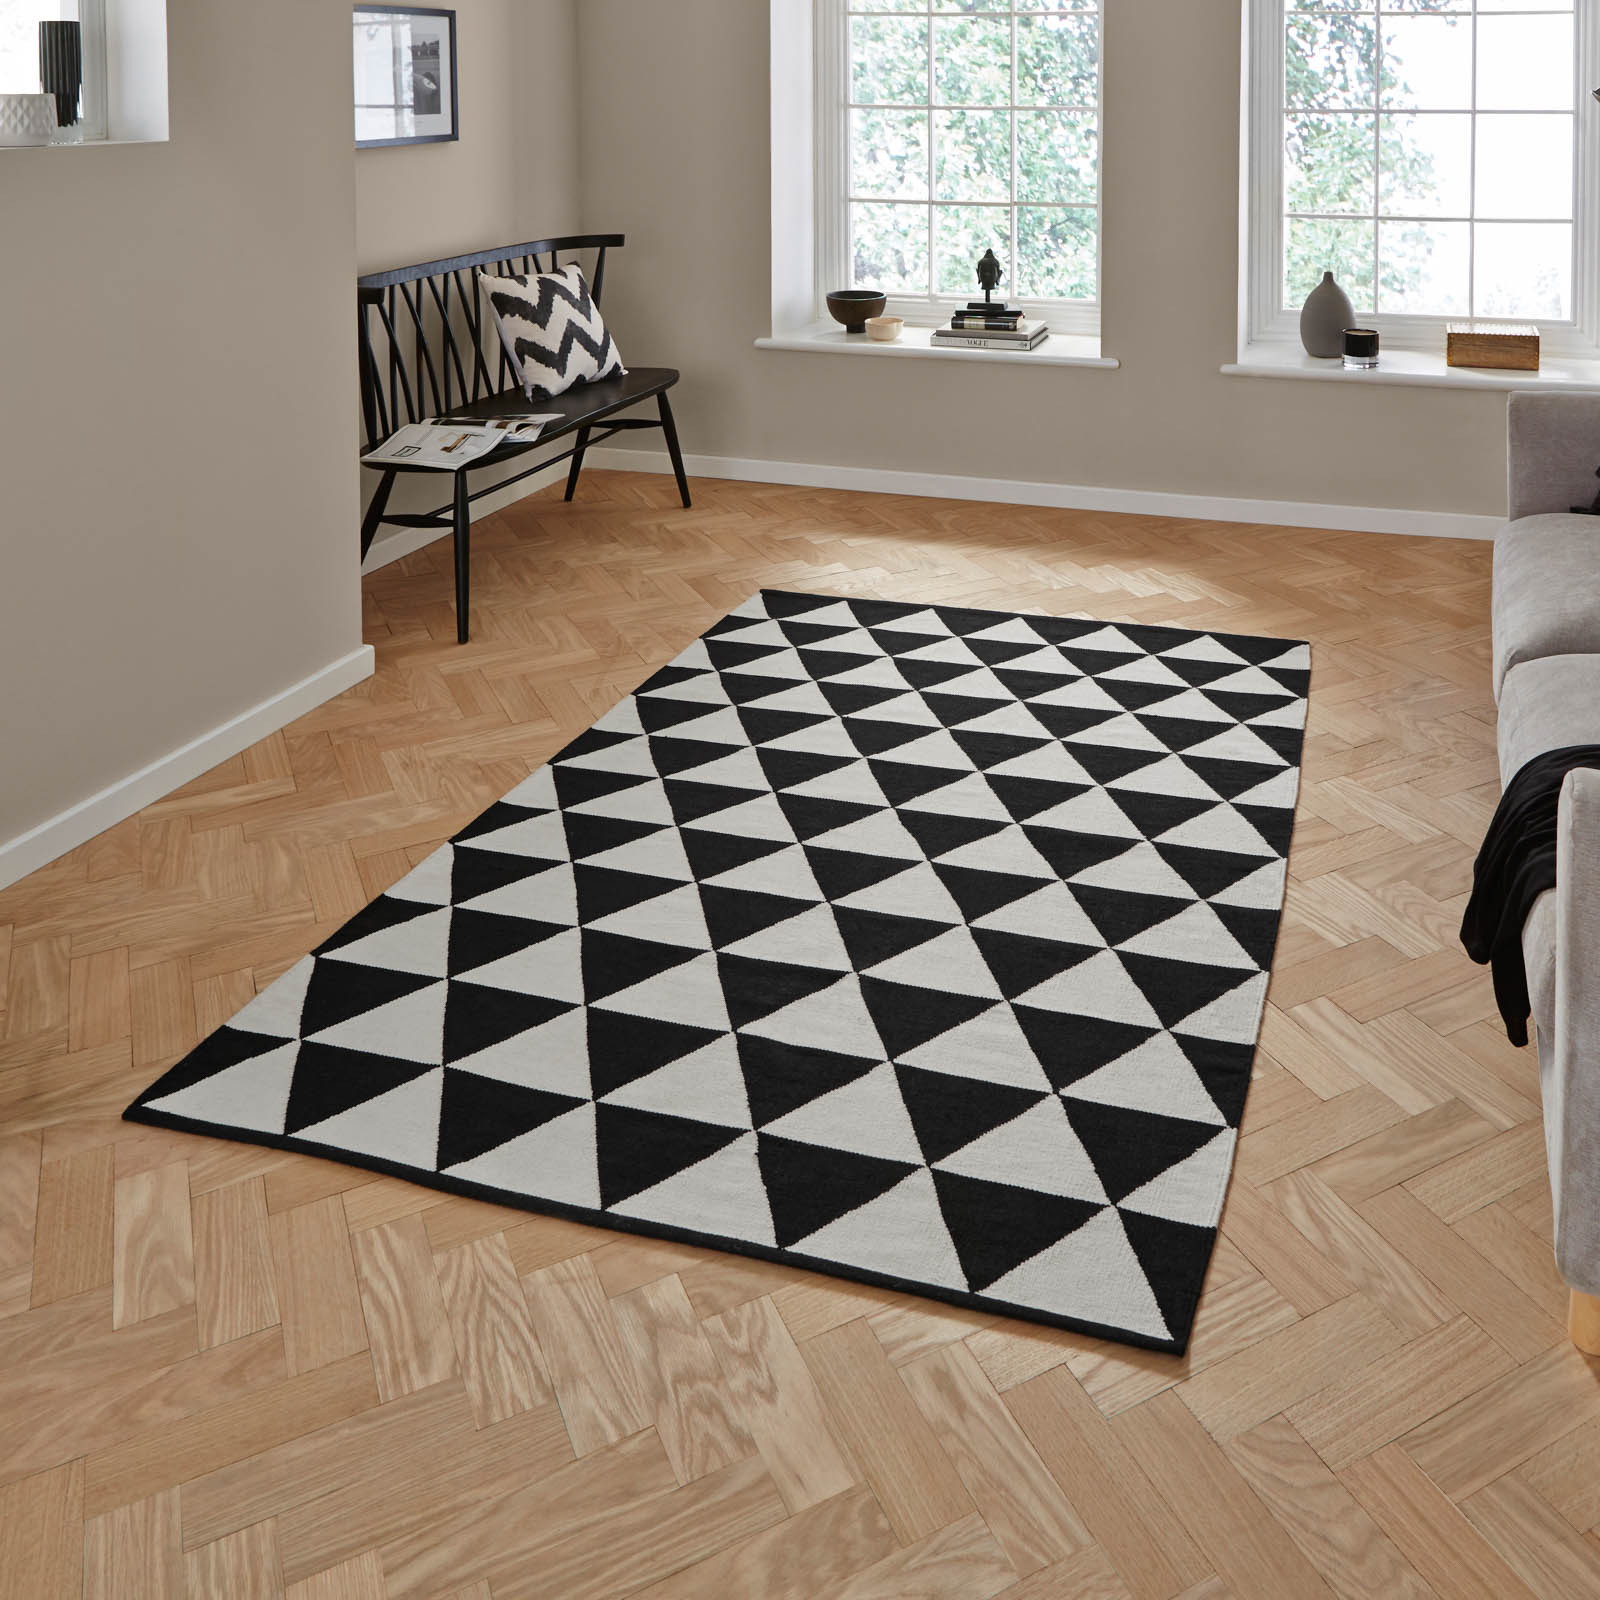 Manhattan Cotton Durrie Rugs MH211A in Black and White